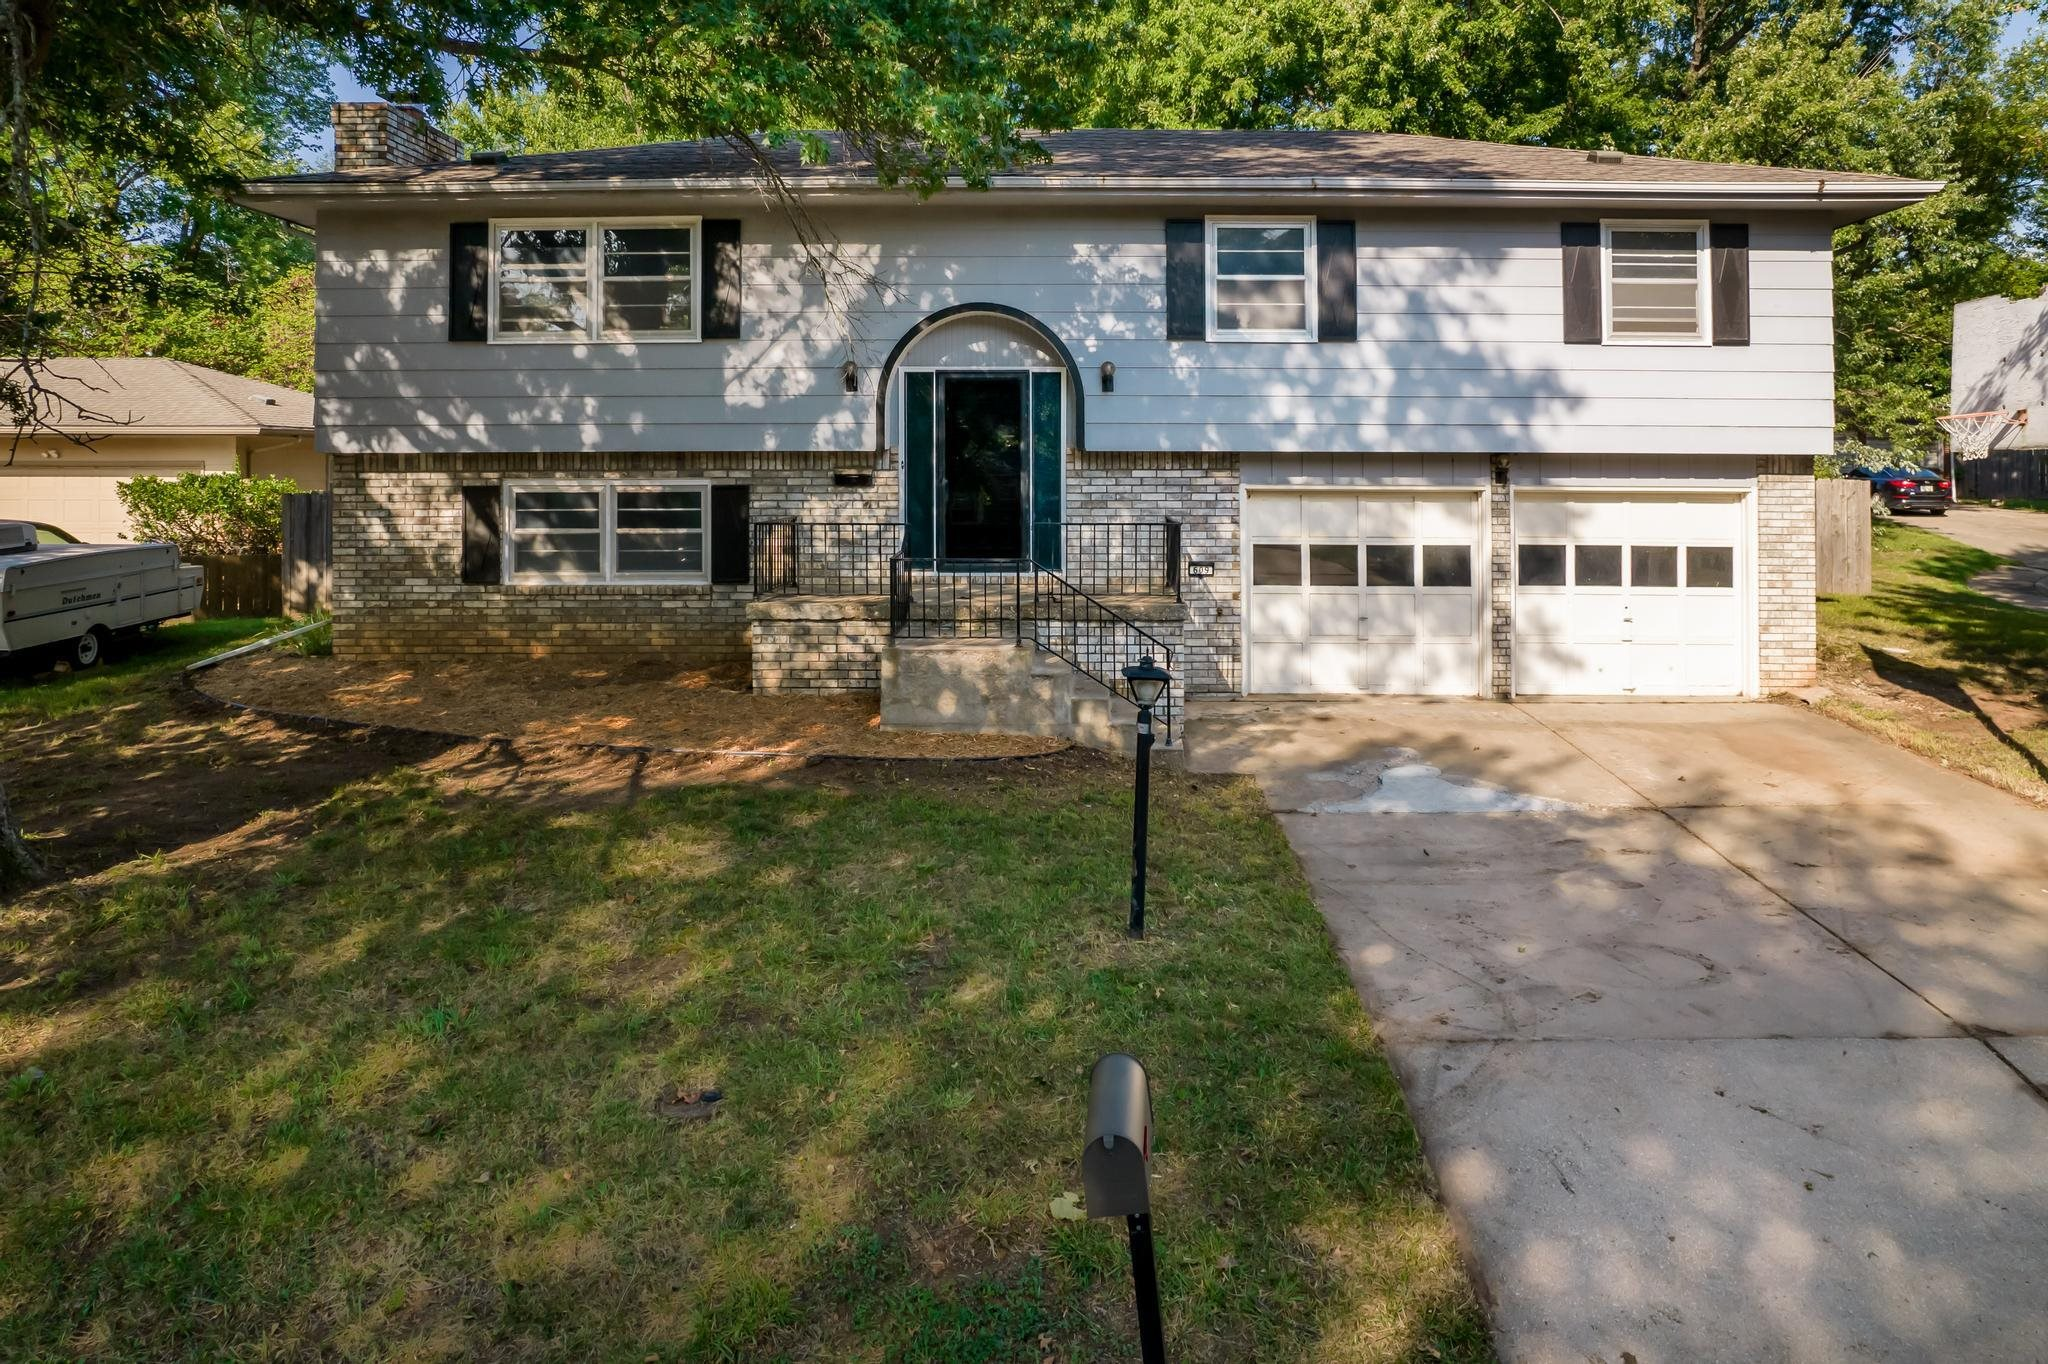 Welcome Home to 609 N. Willow Dr in Derby, Kansas. This 4 bedroom, 2 bathroom home is situated on ma